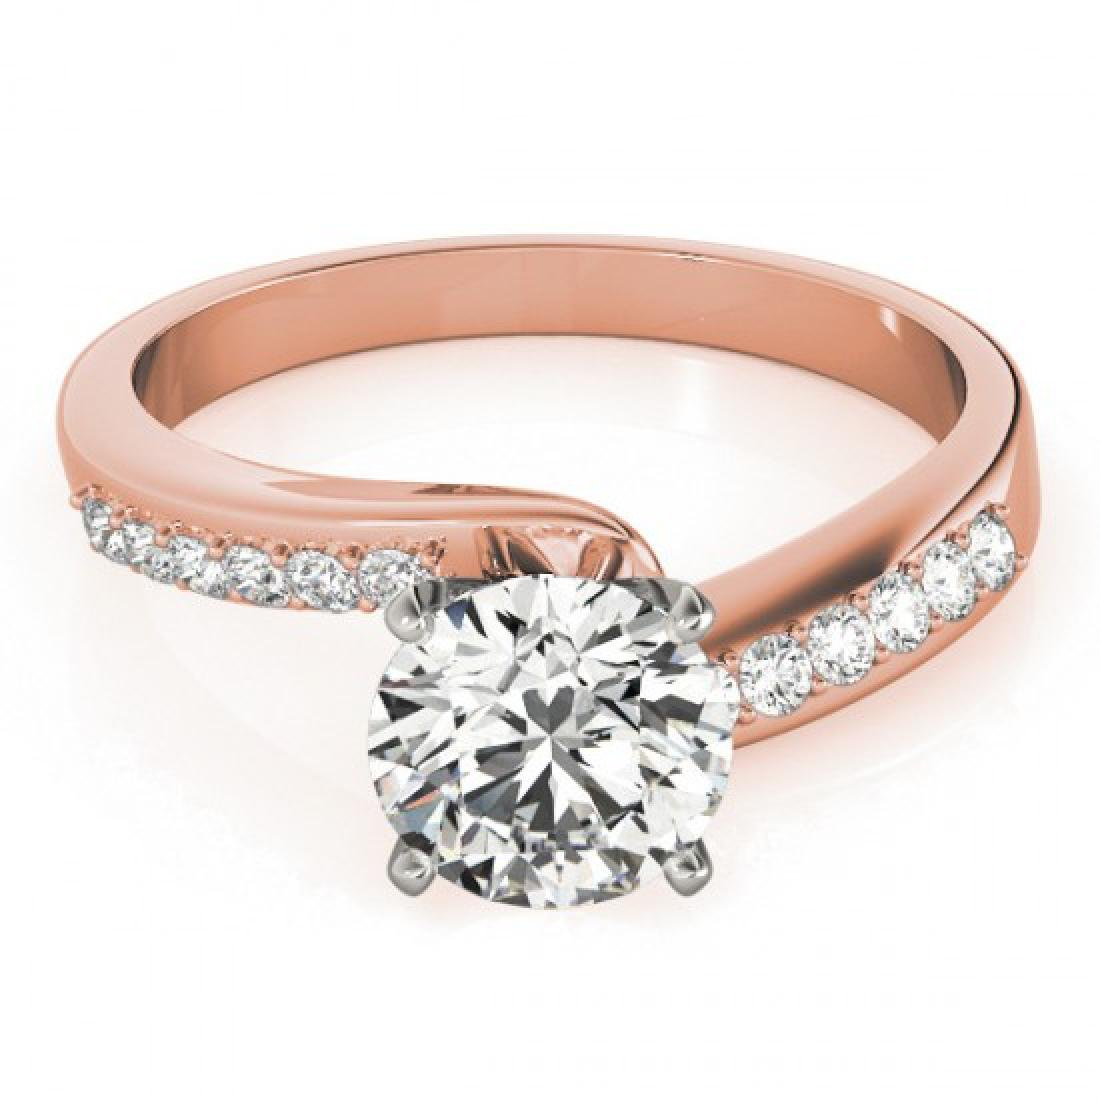 1.4 CTW Certified VS/SI Diamond Bypass Solitaire Ring